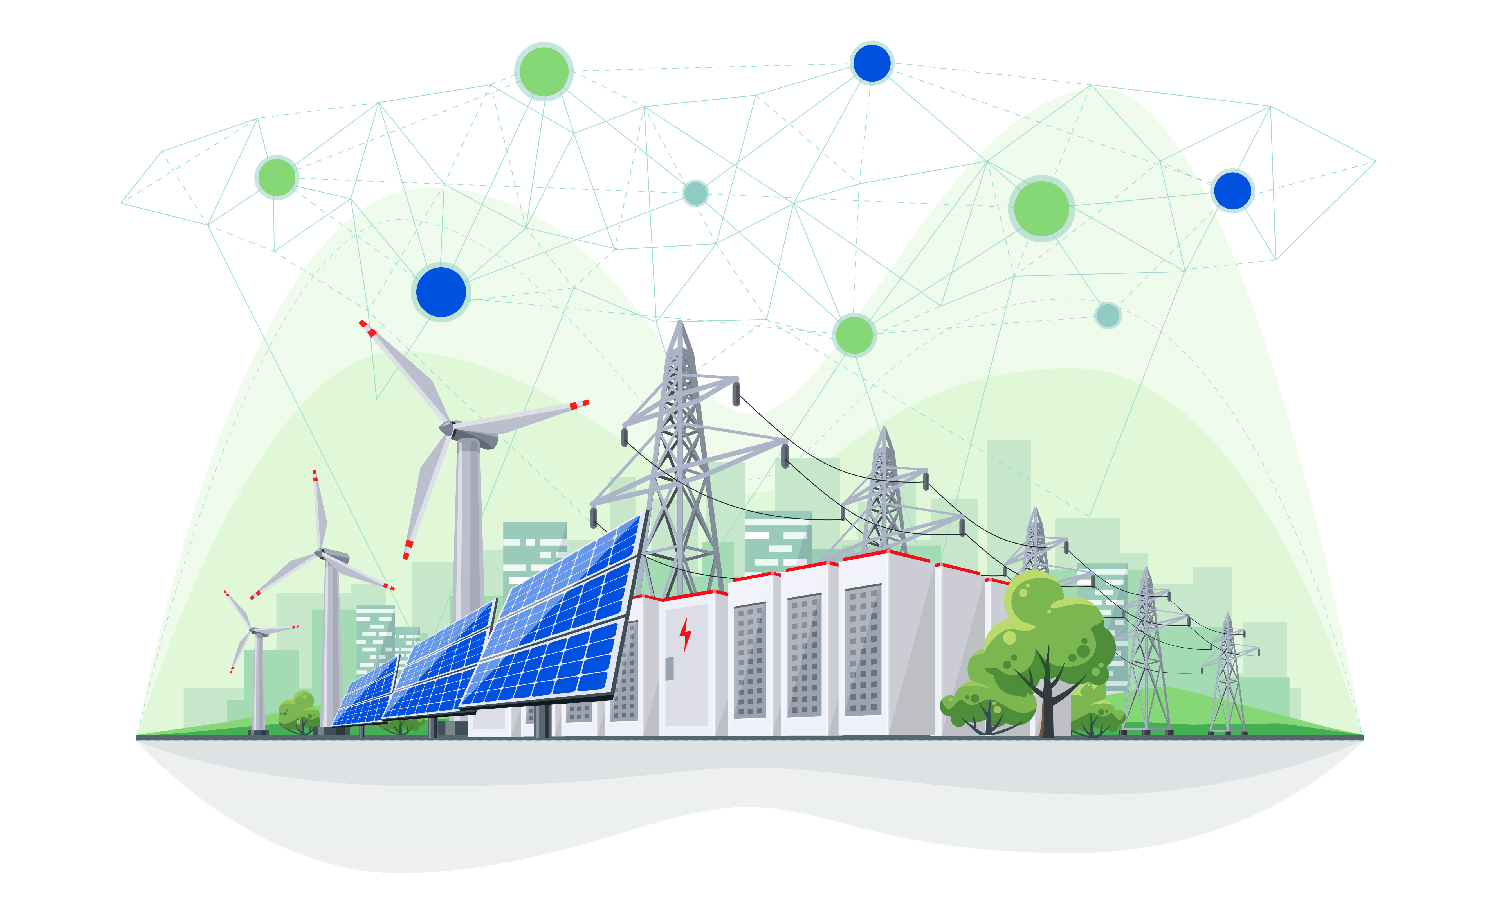 Blockchain in Energy Market Exhibits a Stunning Growth Potentials | Power Ledger, WePower UAB, LO3 Energy